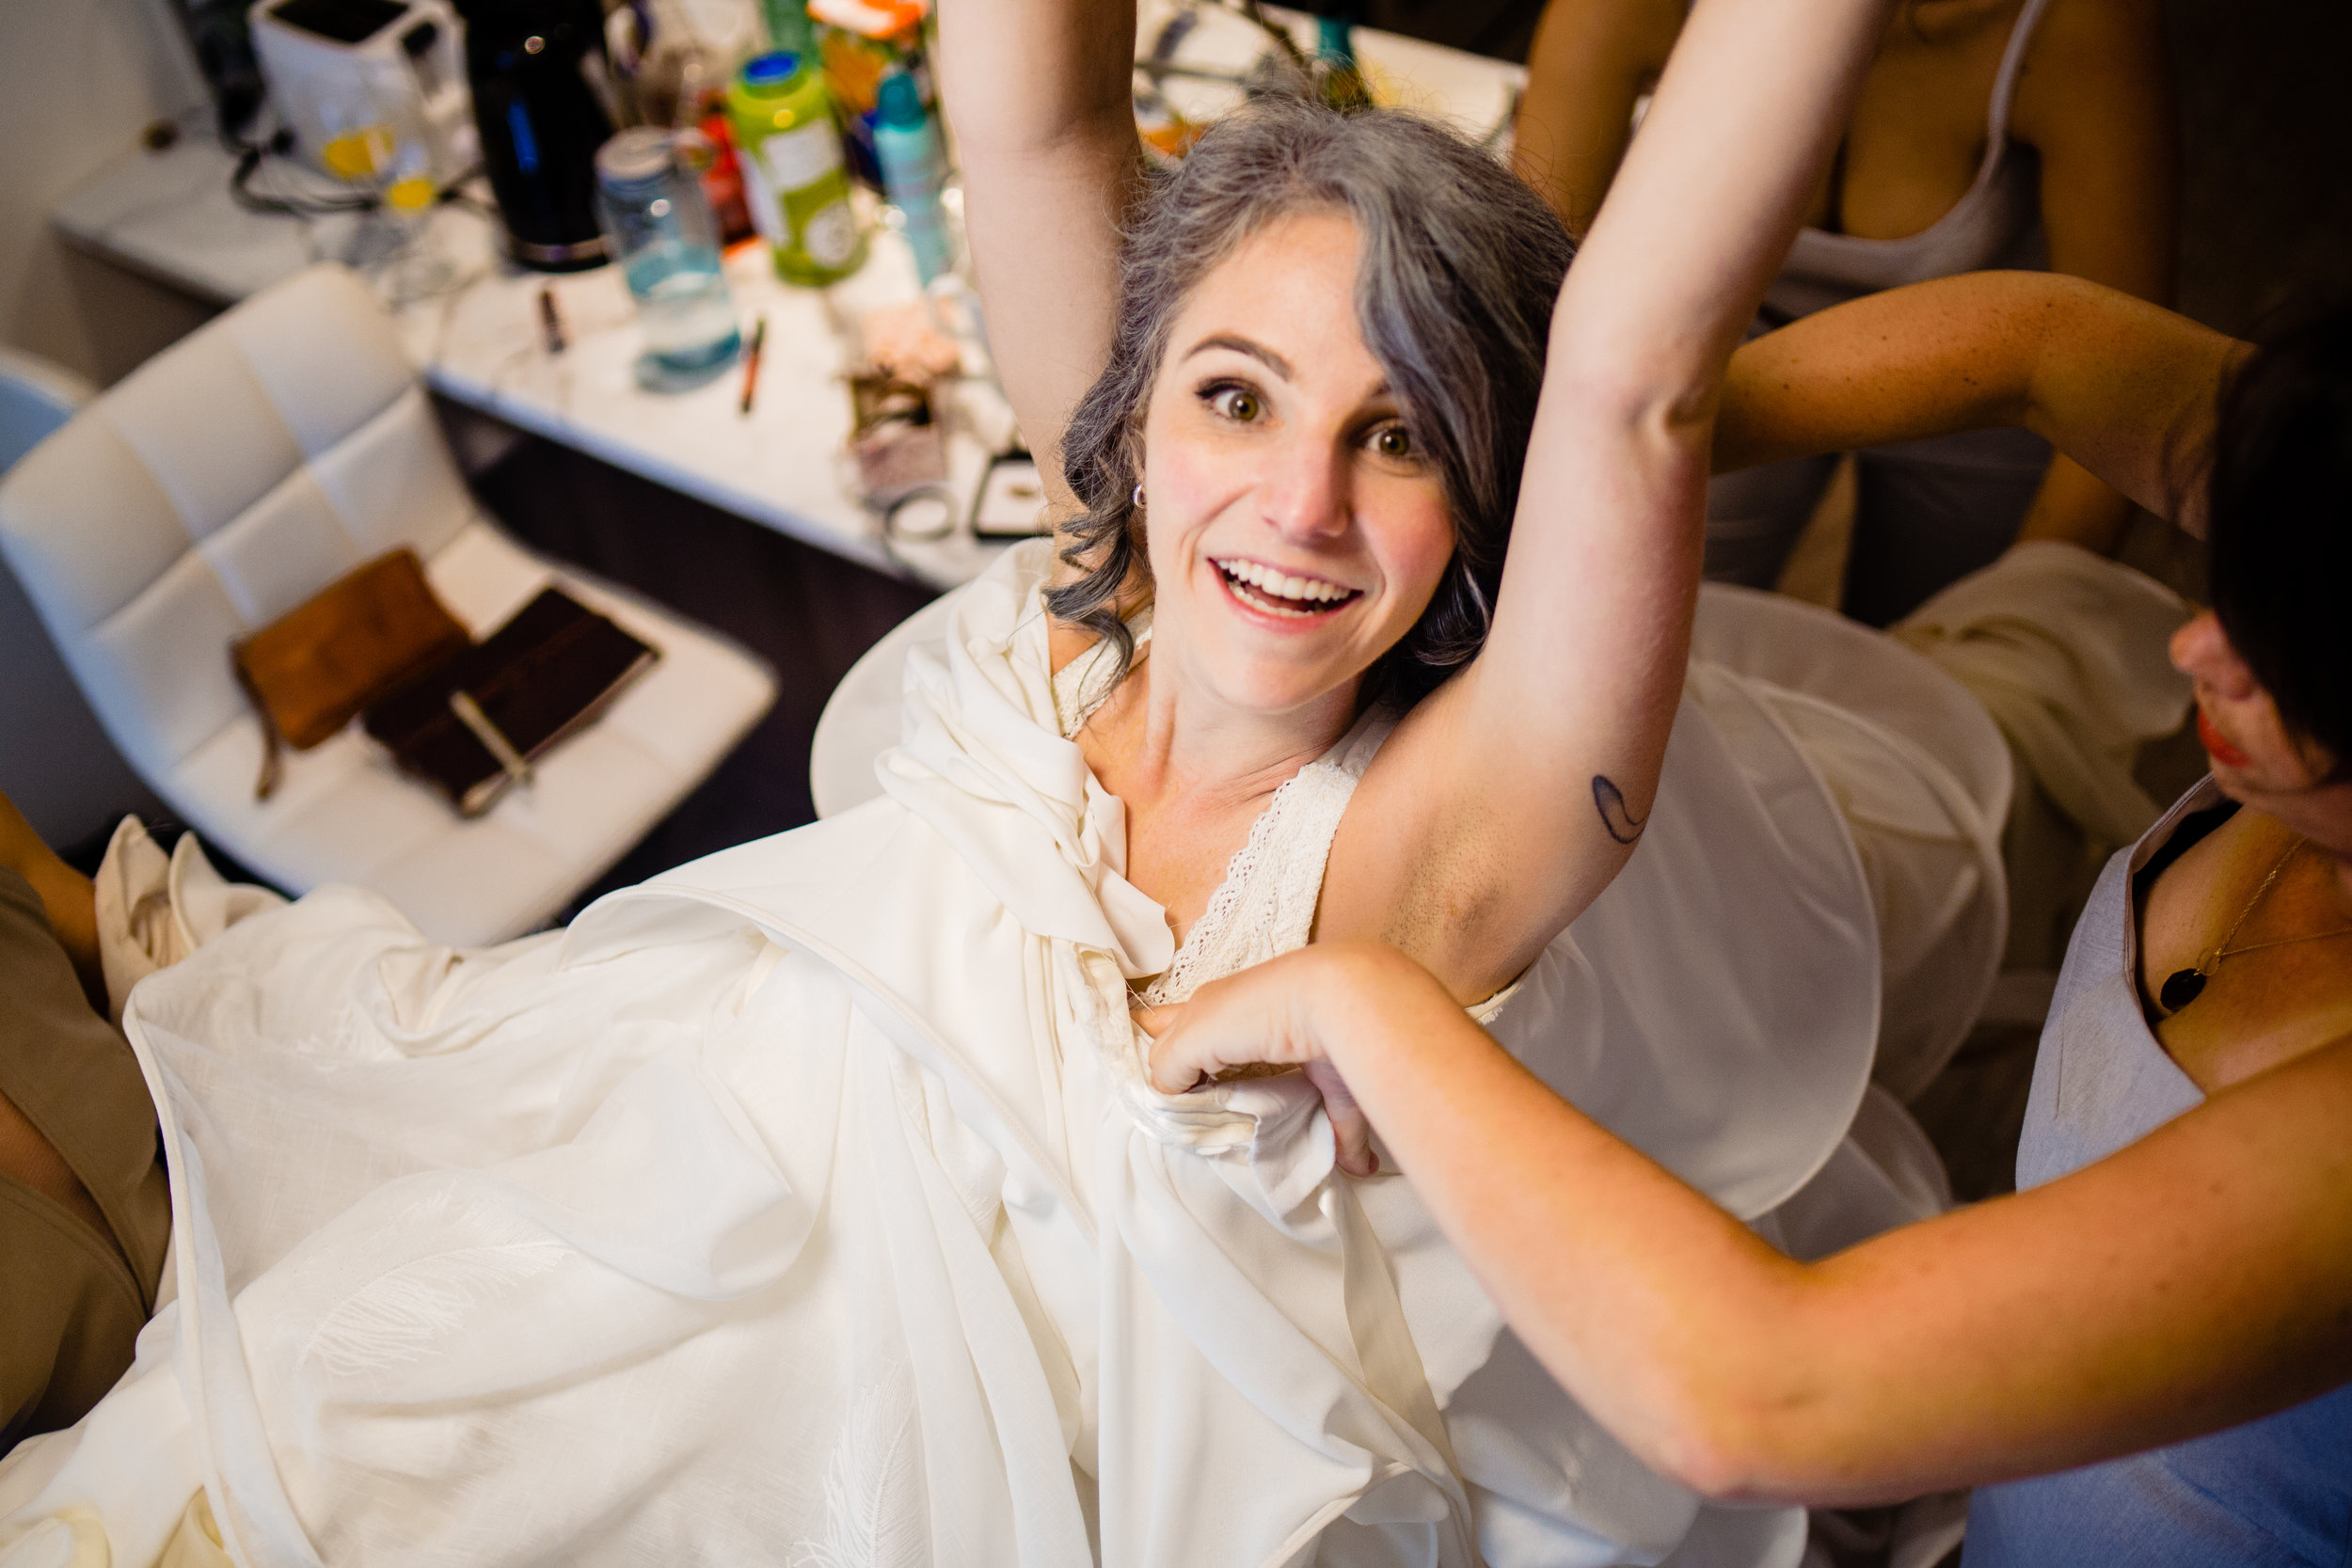 Bride getting in to her handmade dress during bridal prep  Cuckoo Trattoria and Pizzeria Wedding Photographer Vancouver Island Coombs, BC Goats on the Roof Market. Eclectic Formal quirky DIY artistic wedding full of handmade details and laughter. #fun #candid #storytelling #storytellingphotographer #bride #groom #weddinginspo #realwedding #horns #handmade #DIYwedding #DIYinspo #handmaderings #nobouquet #outdoor #pizzeria